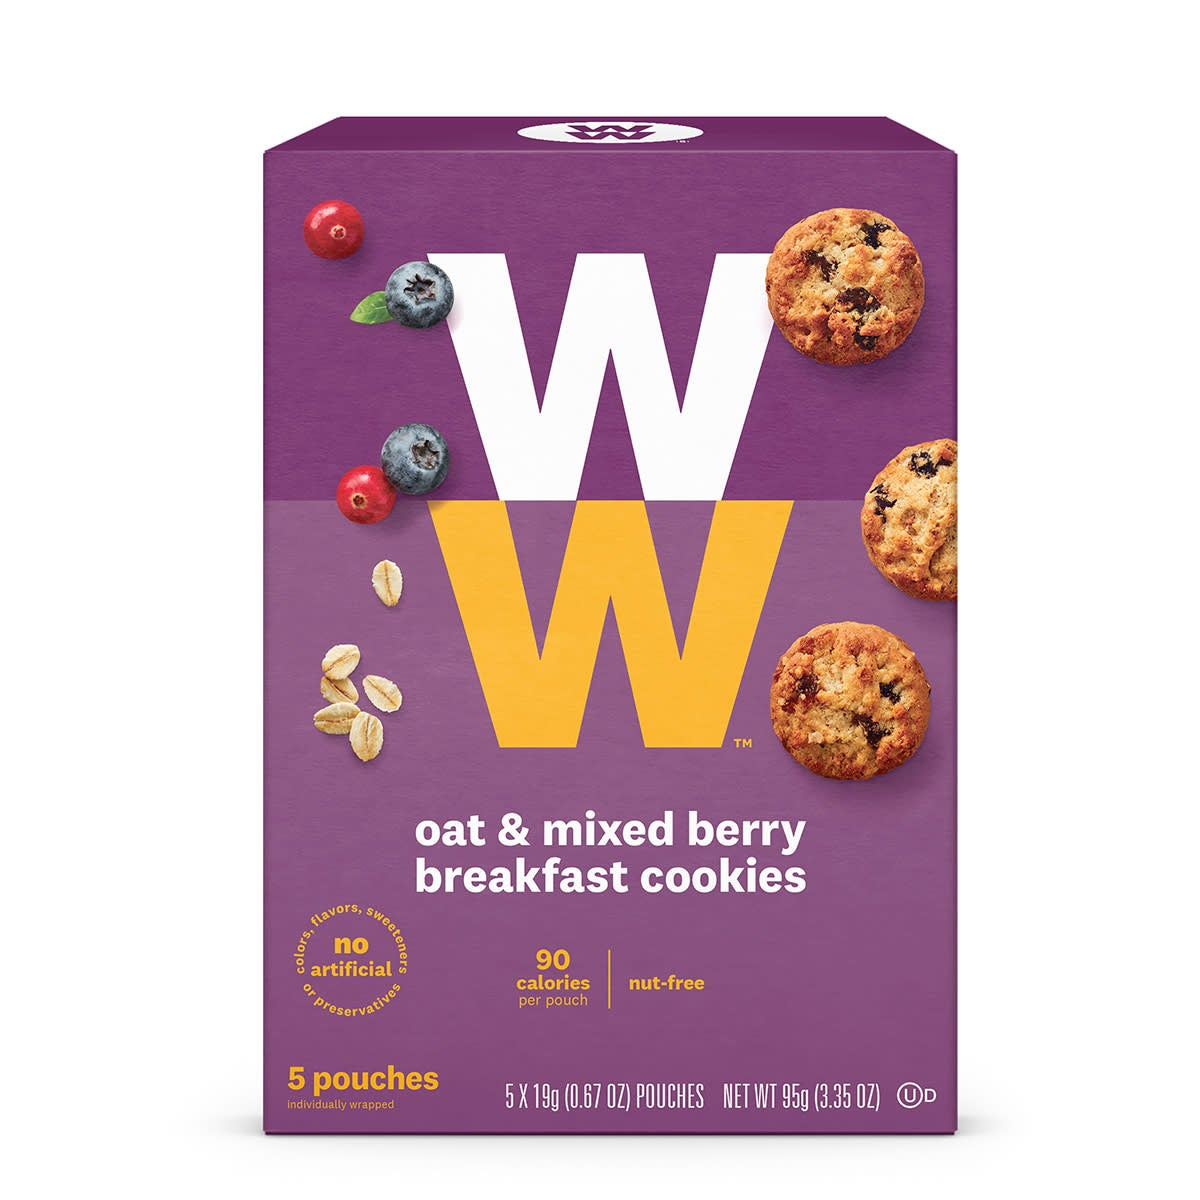 Oat and Mixed Berry Breakfast Cookies, front of box, 5 pouches, 90 calories, nut free